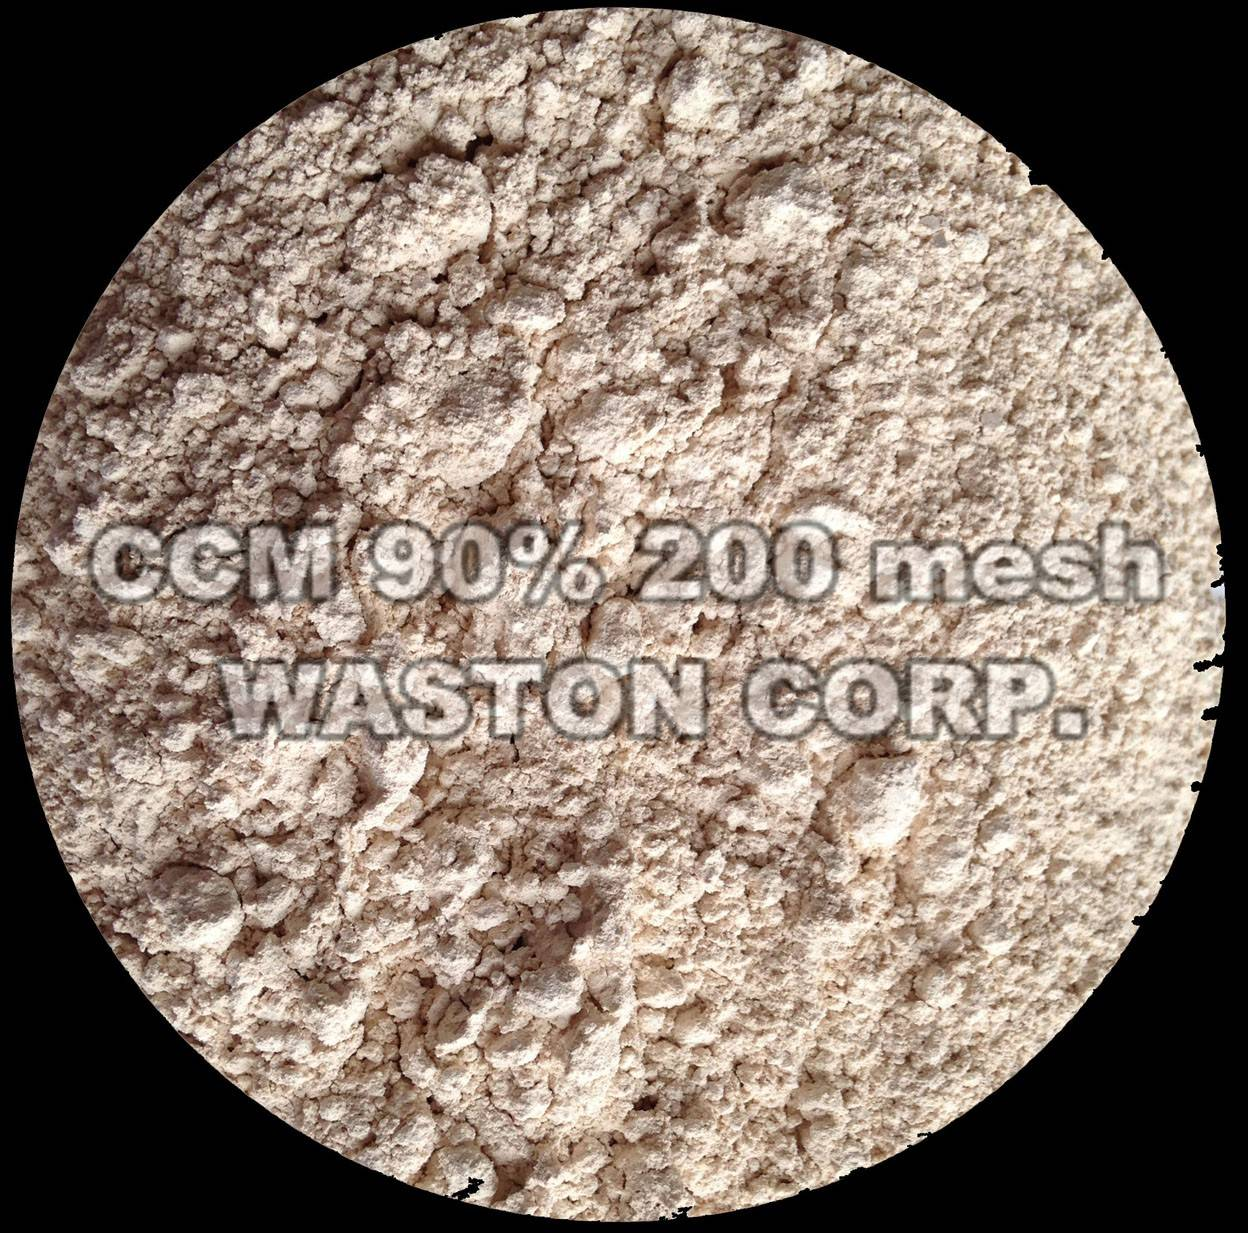 Caustic calcined magnesite 90% 200mesh